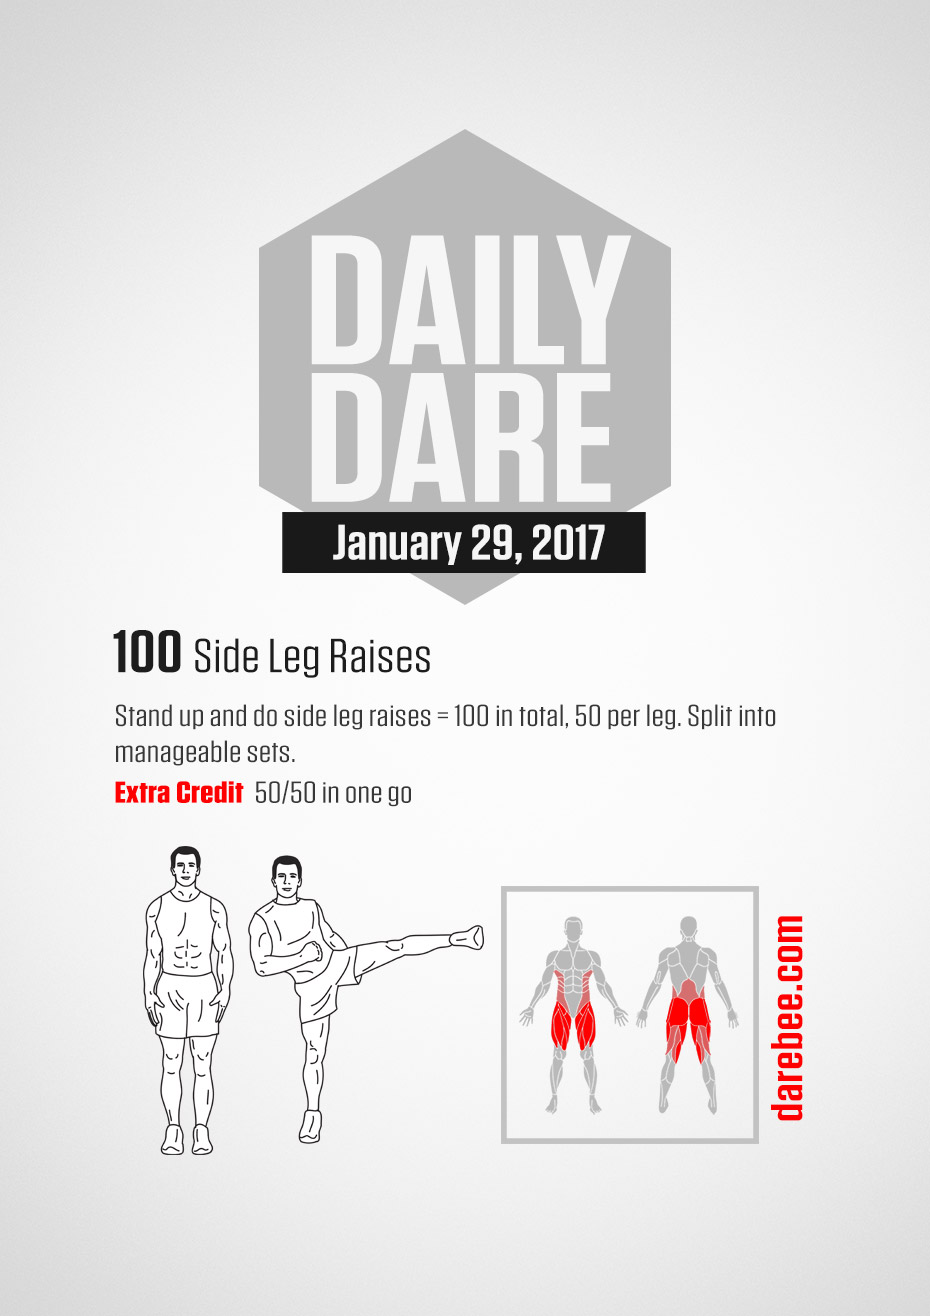 DD - 29 January 2017 ] 100 Side Leg raises - The Hive